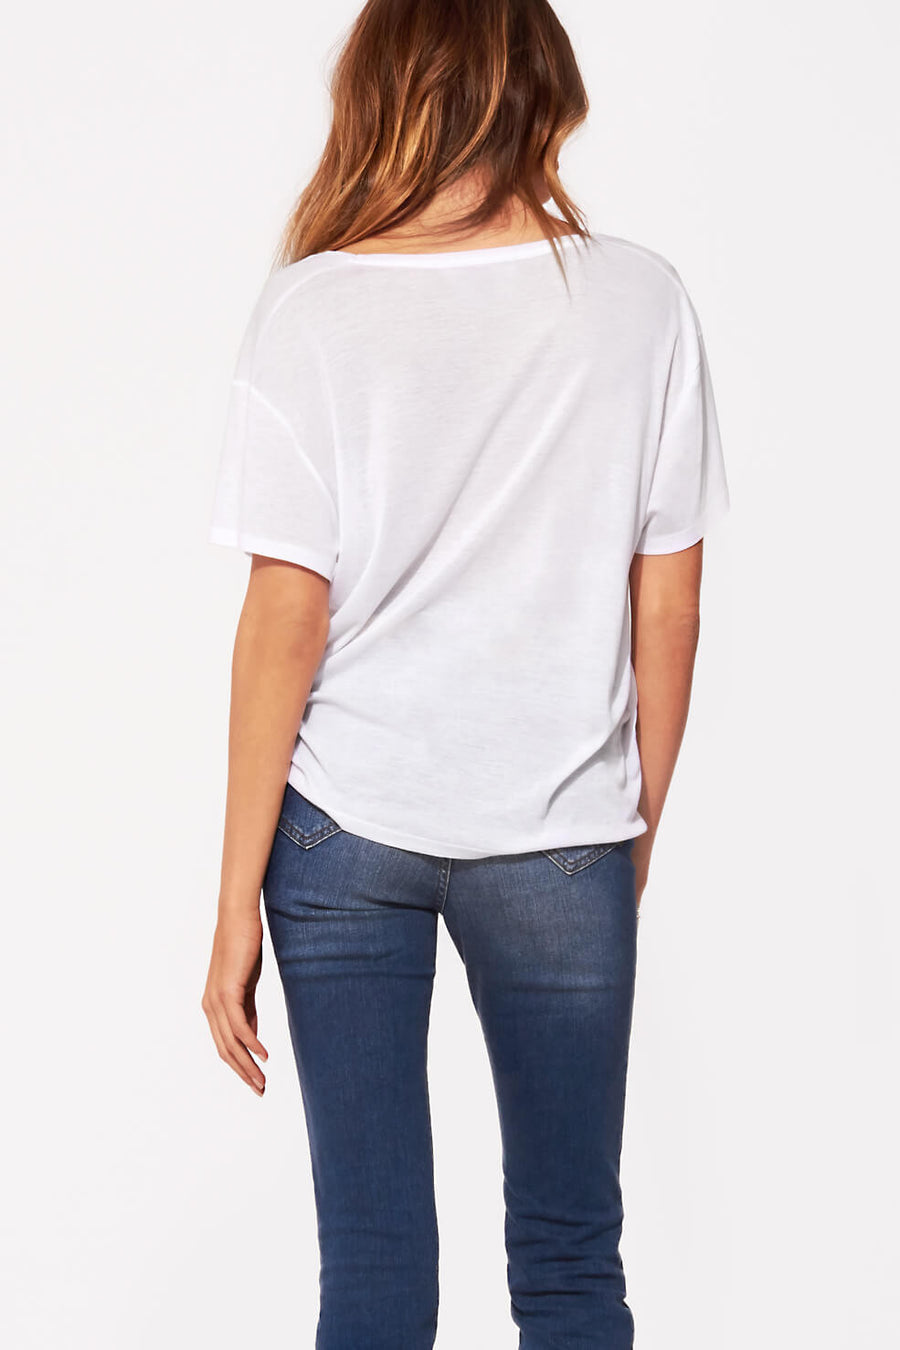 Deep Silk V Neck Tee - White - Pavilion